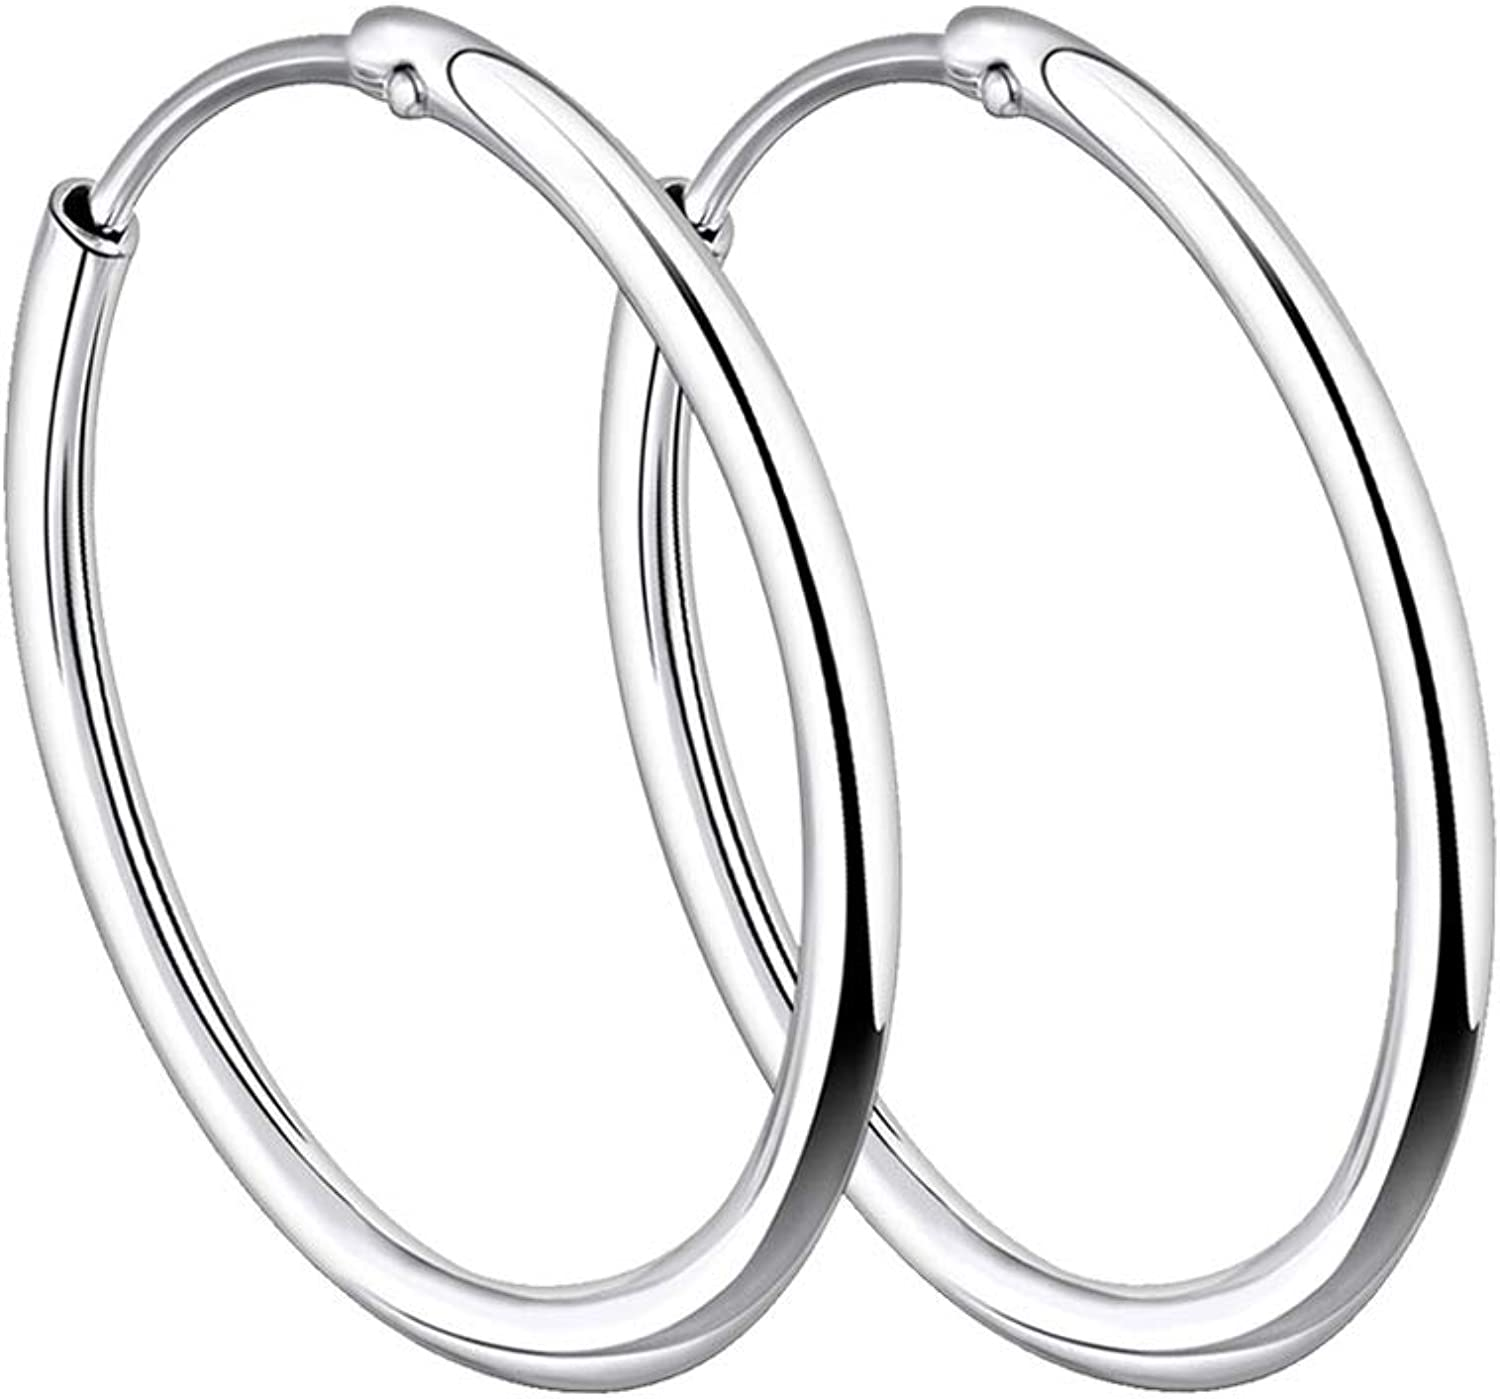 925 Sterling Silver Polished Round Endless Hoop Earrings 1.3mm x 12mm